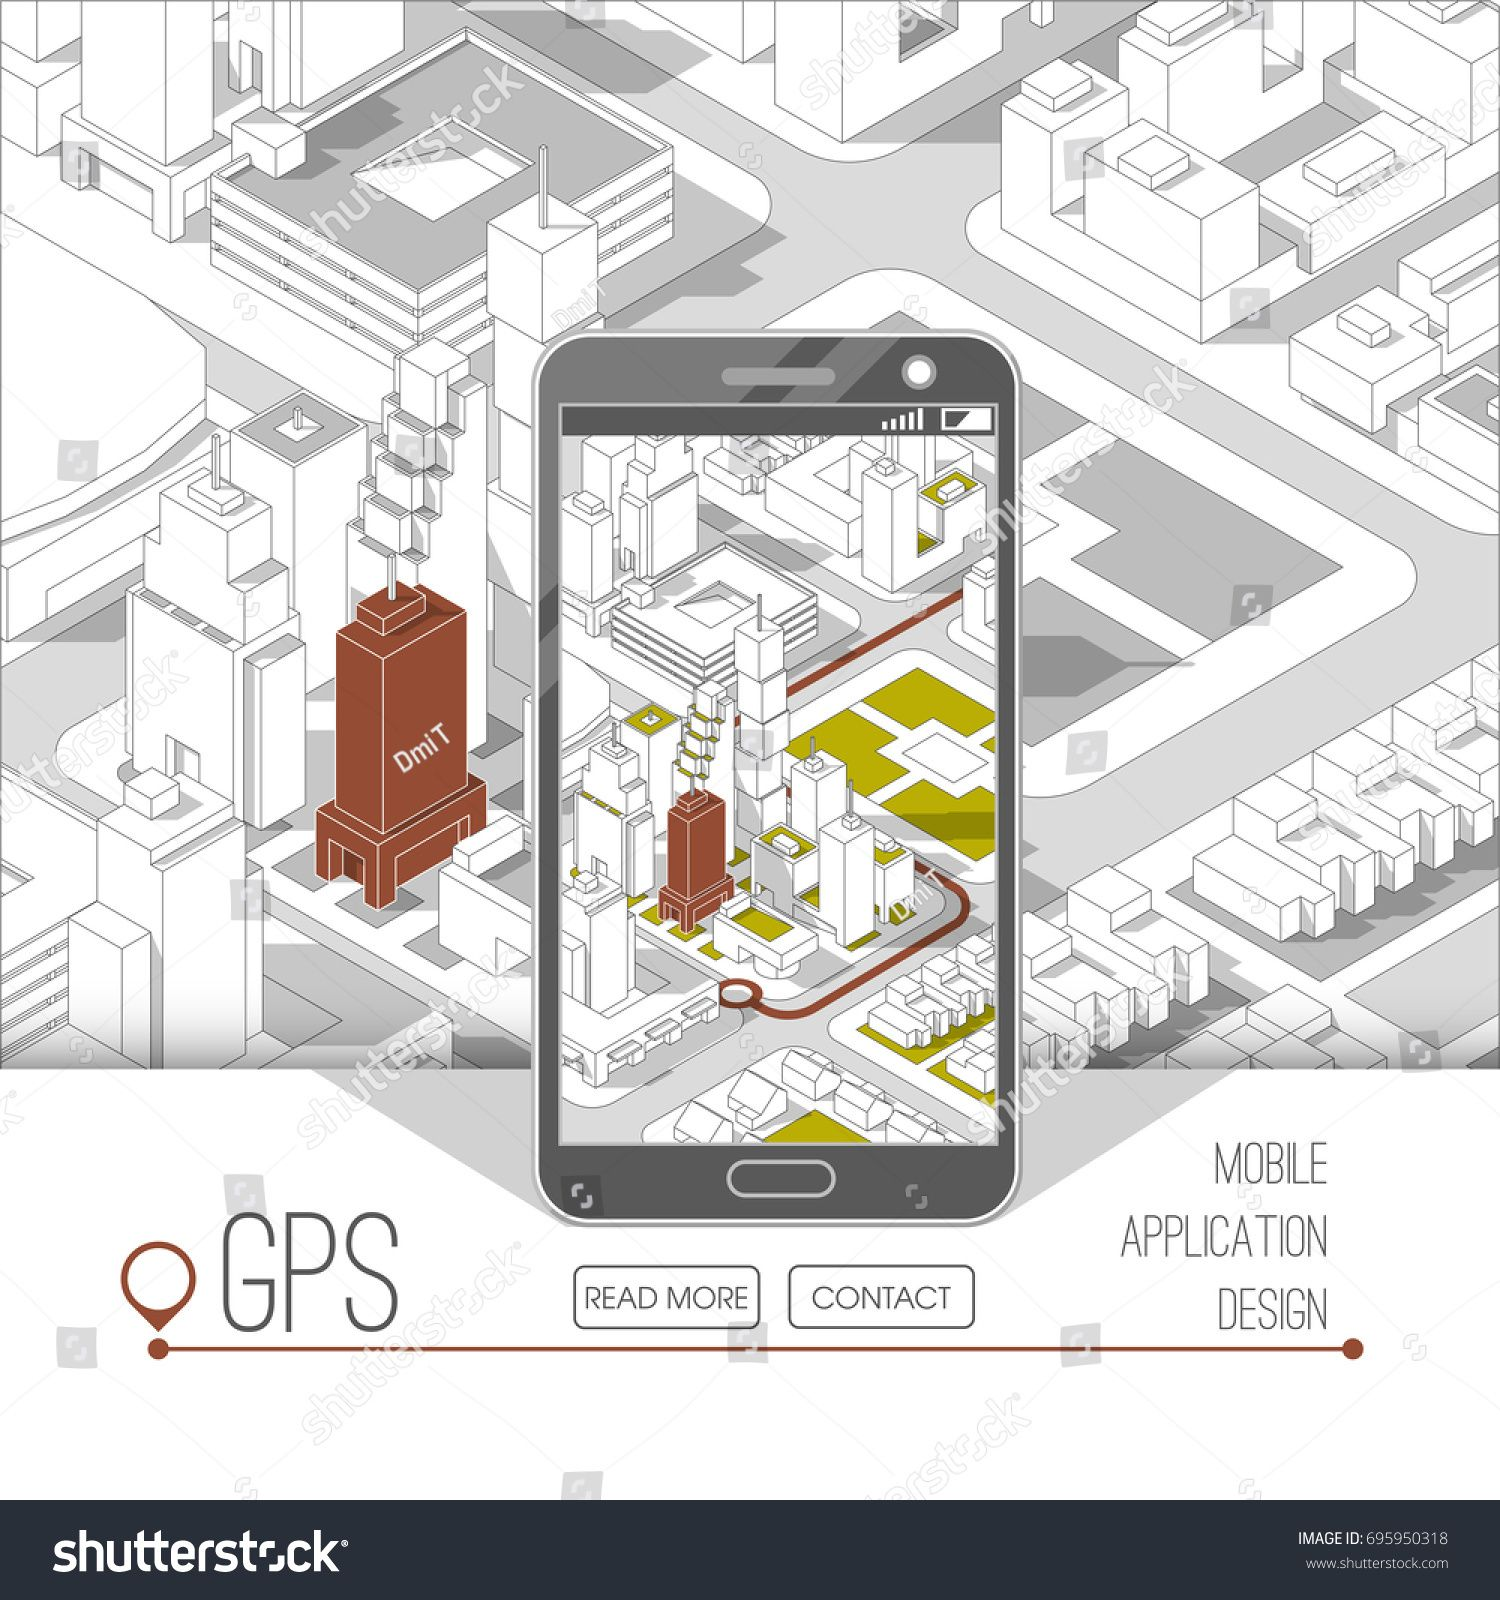 Mobile gps and tracking concept  Location track app on